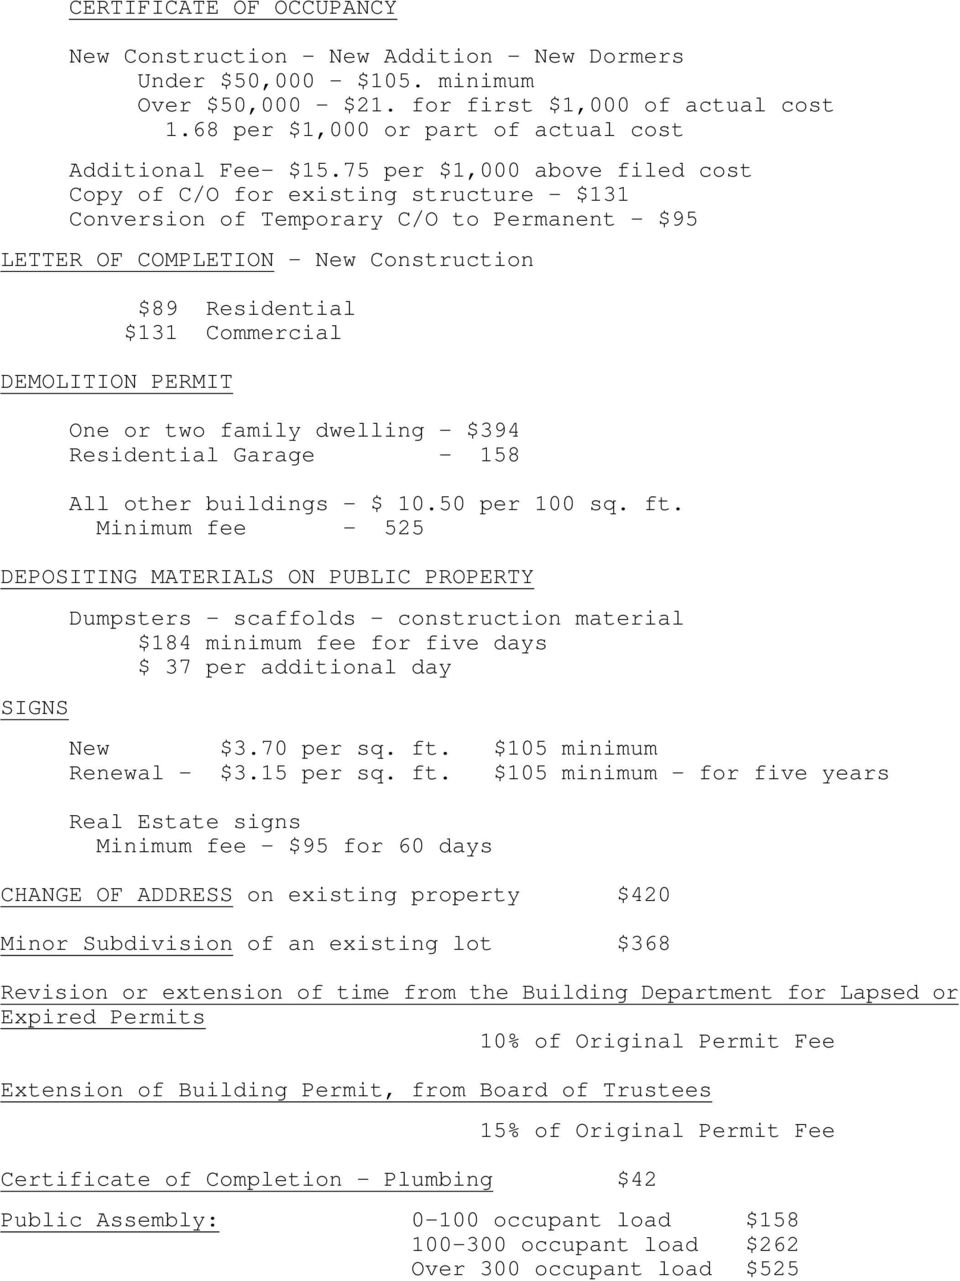 75 per $1,000 above filed cost Copy of C/O for existing structure - $131 Conversion of Temporary C/O to Permanent - $95 LETTER OF COMPLETION - New Construction DEMOLITION PERMIT $89 Residential $131